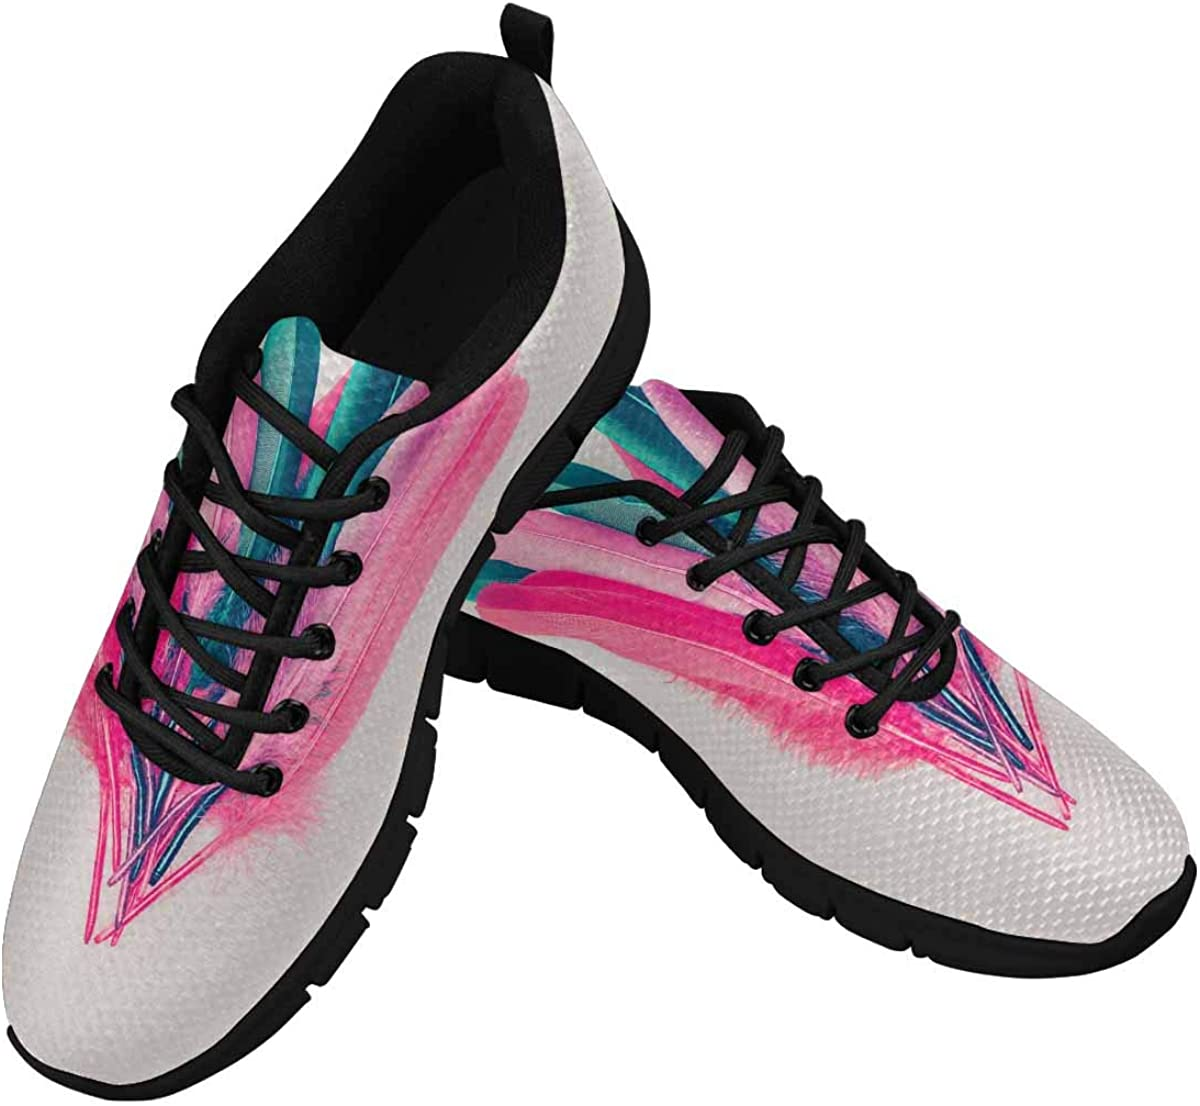 INTERESTPRINT Feathers Minimal Style Women Walking Shoes Comfortable Lightweight Work Casual Travel Sneakers